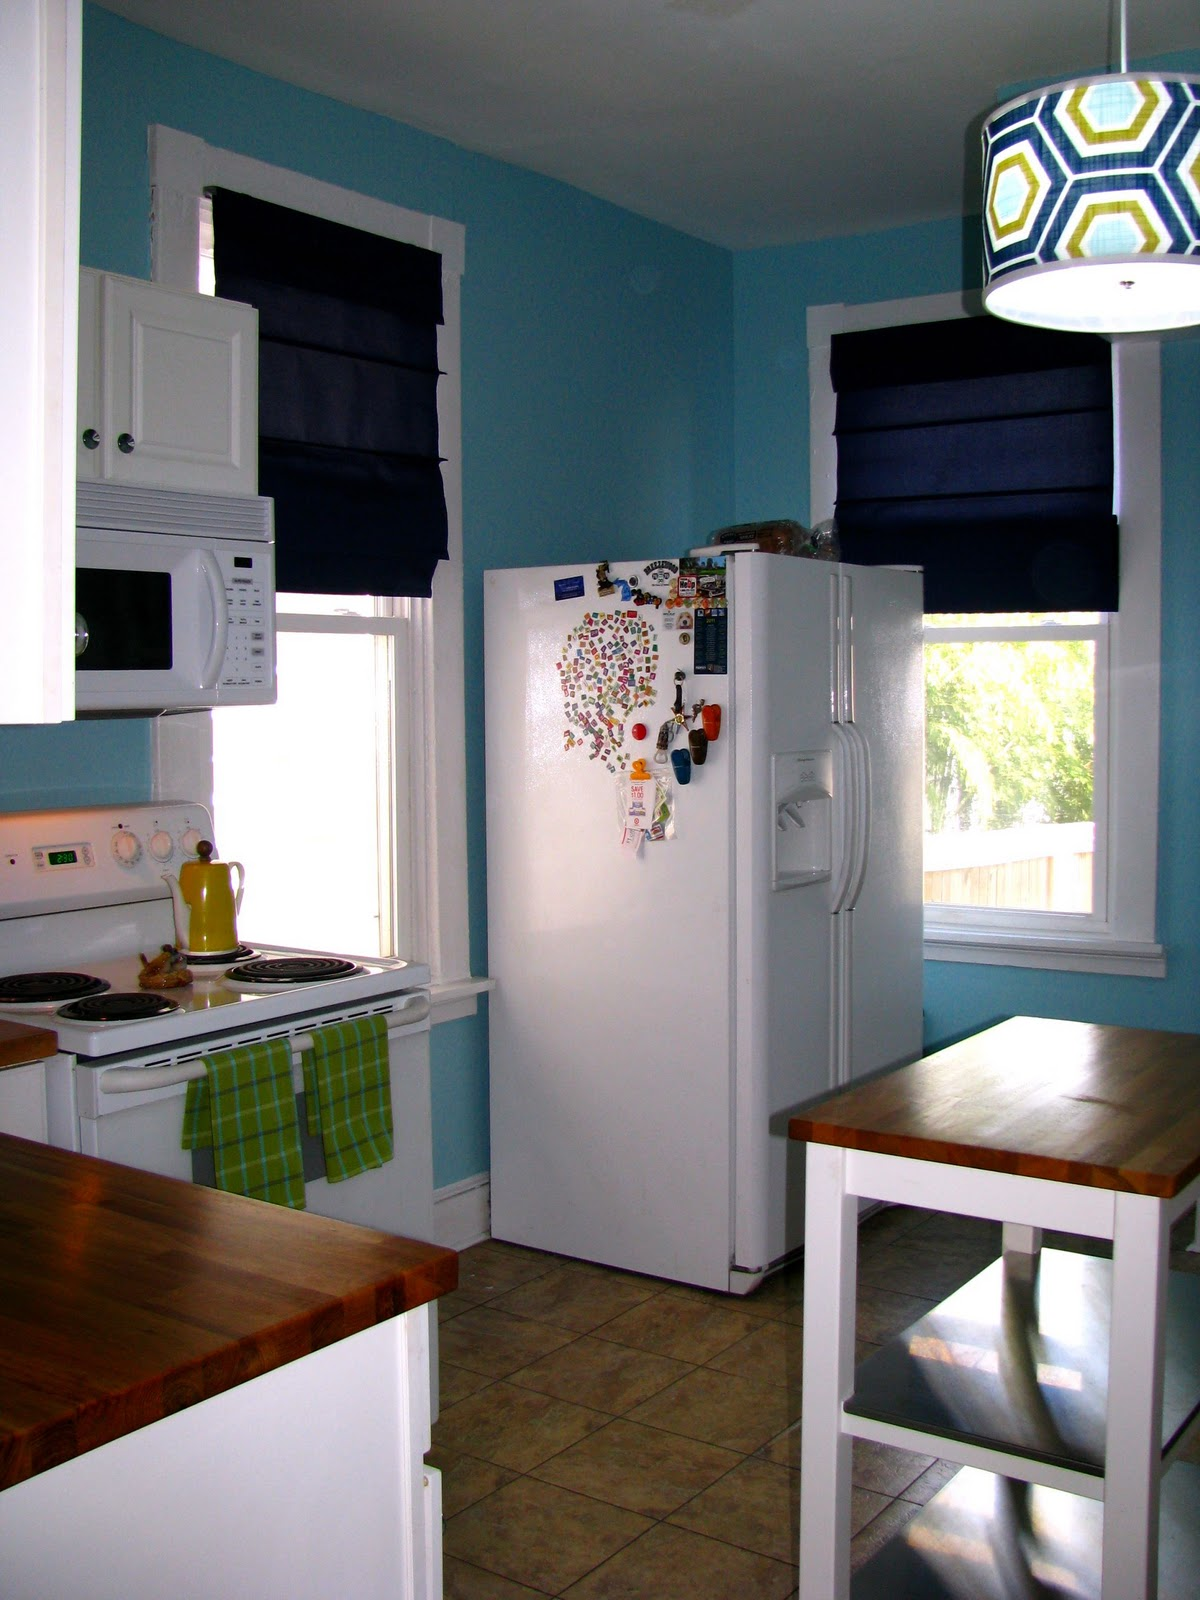 remodel kitchen cheap aid dishwashers remodelaholic on the